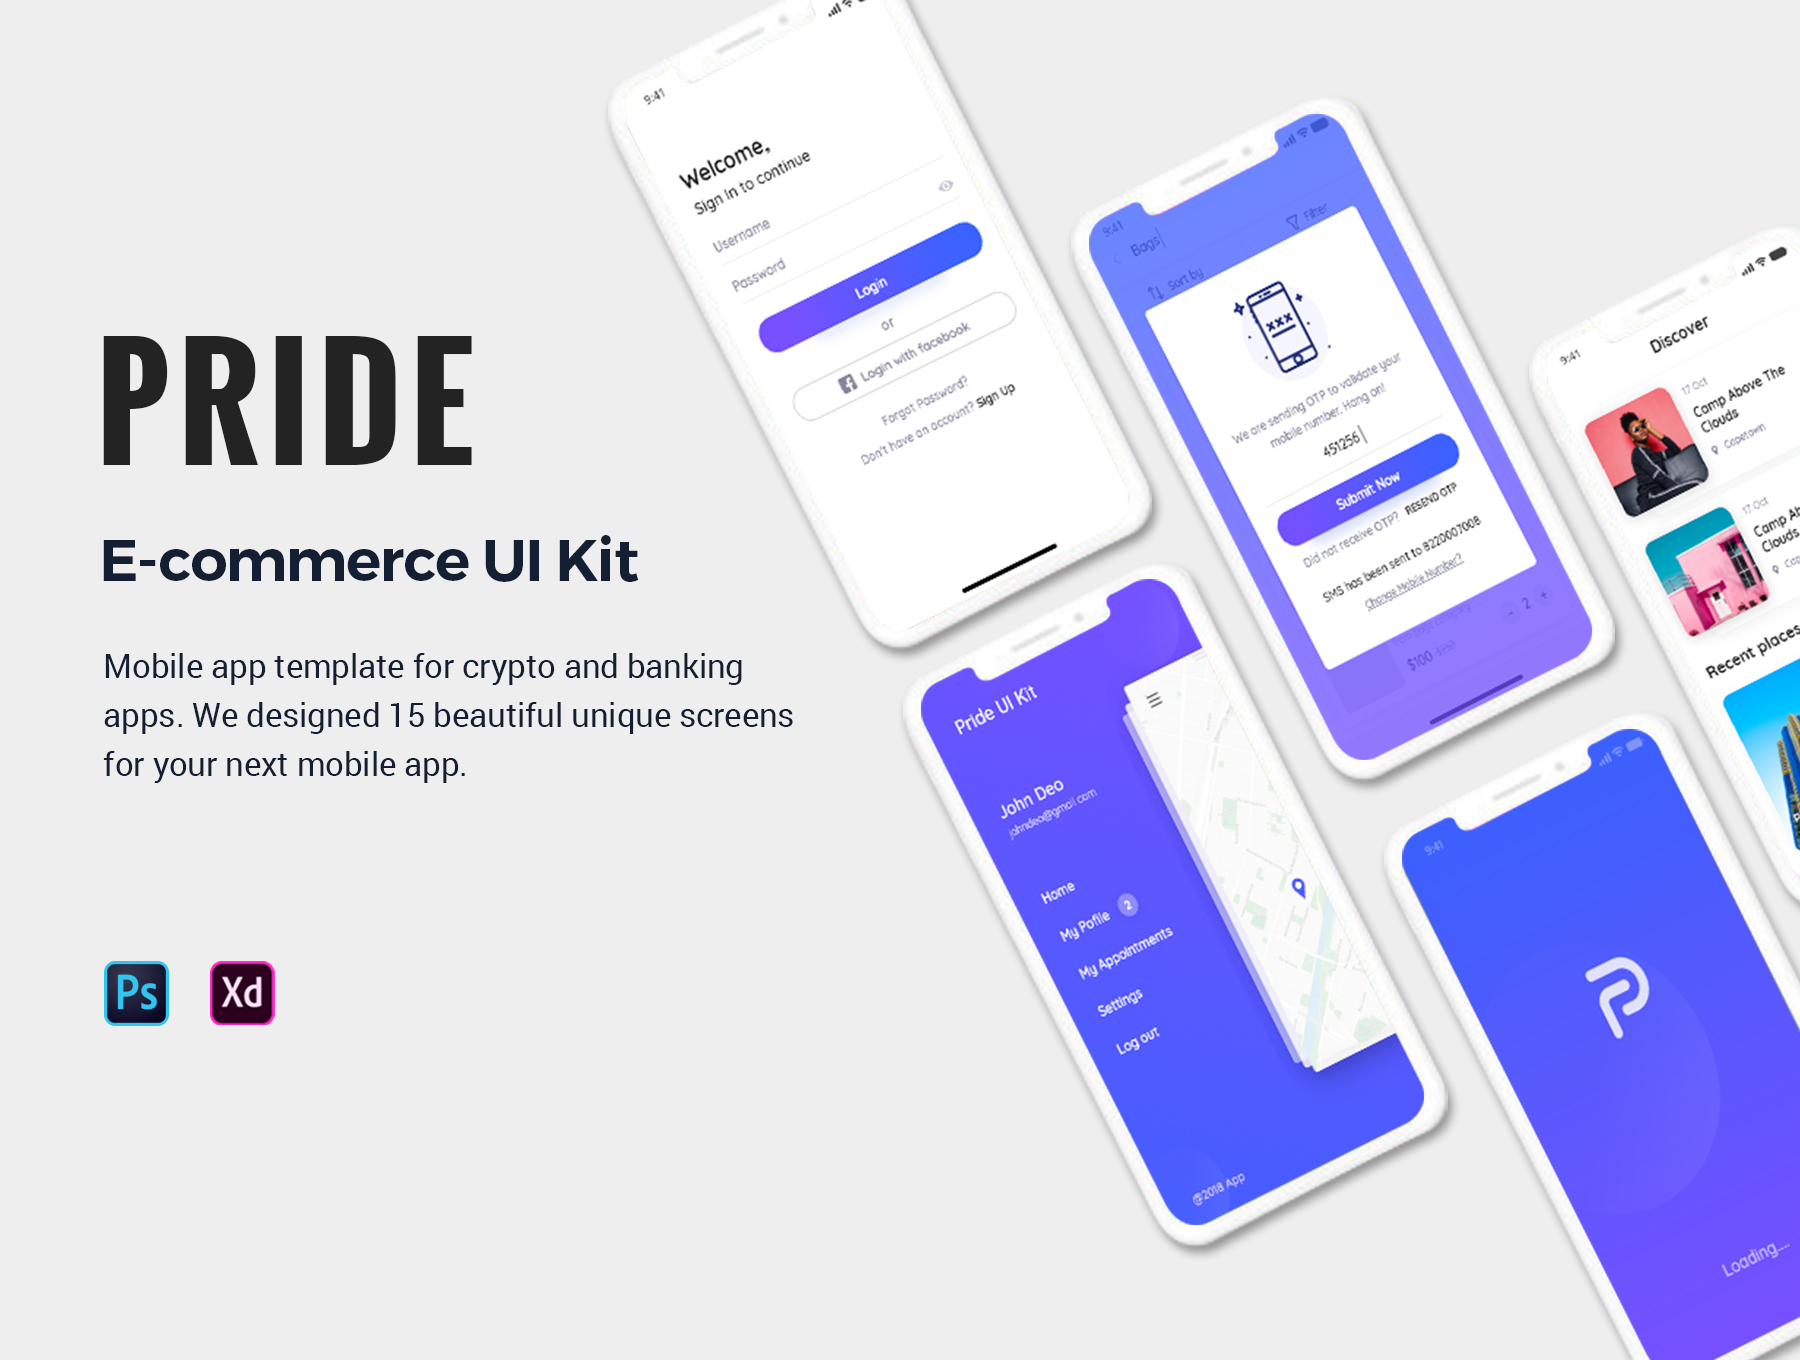 优秀的电商APP UI KIT套装下载[XD,PSD] Pride-E-Commerce-Mobile-App-UI-Kit